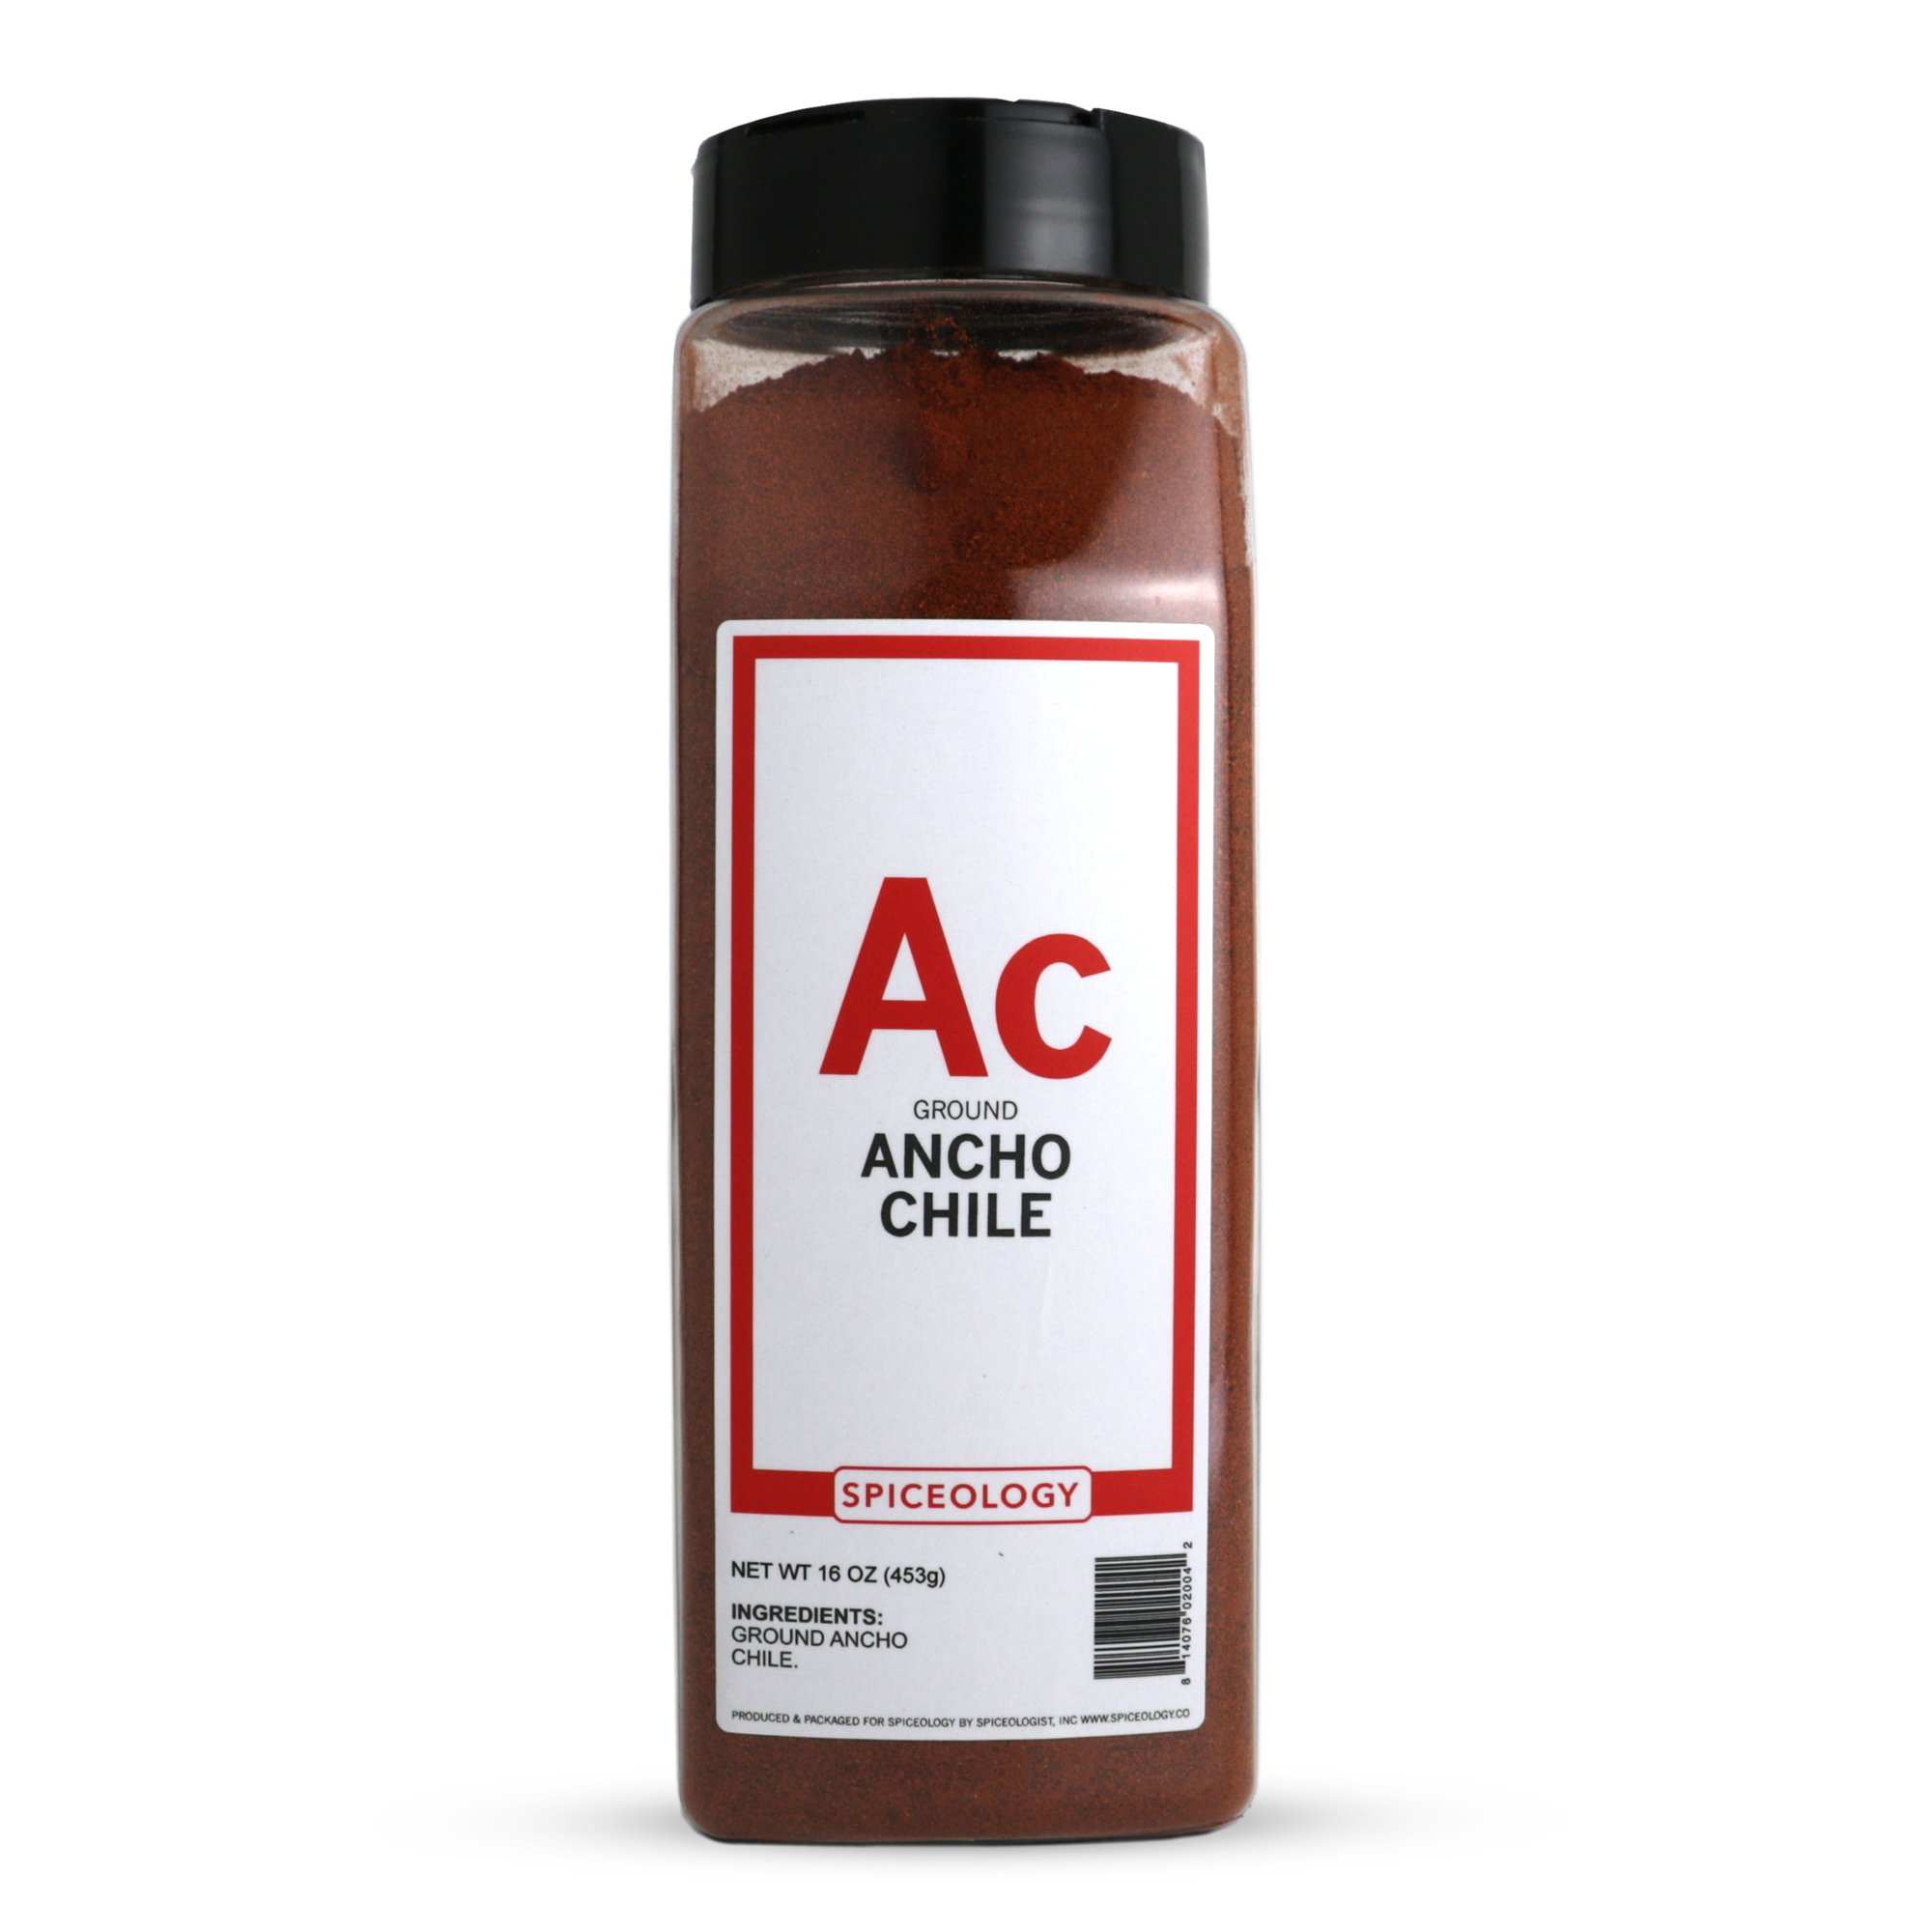 Spiceology Premium Spices - Ground Ancho Chile Powder, 16 oz